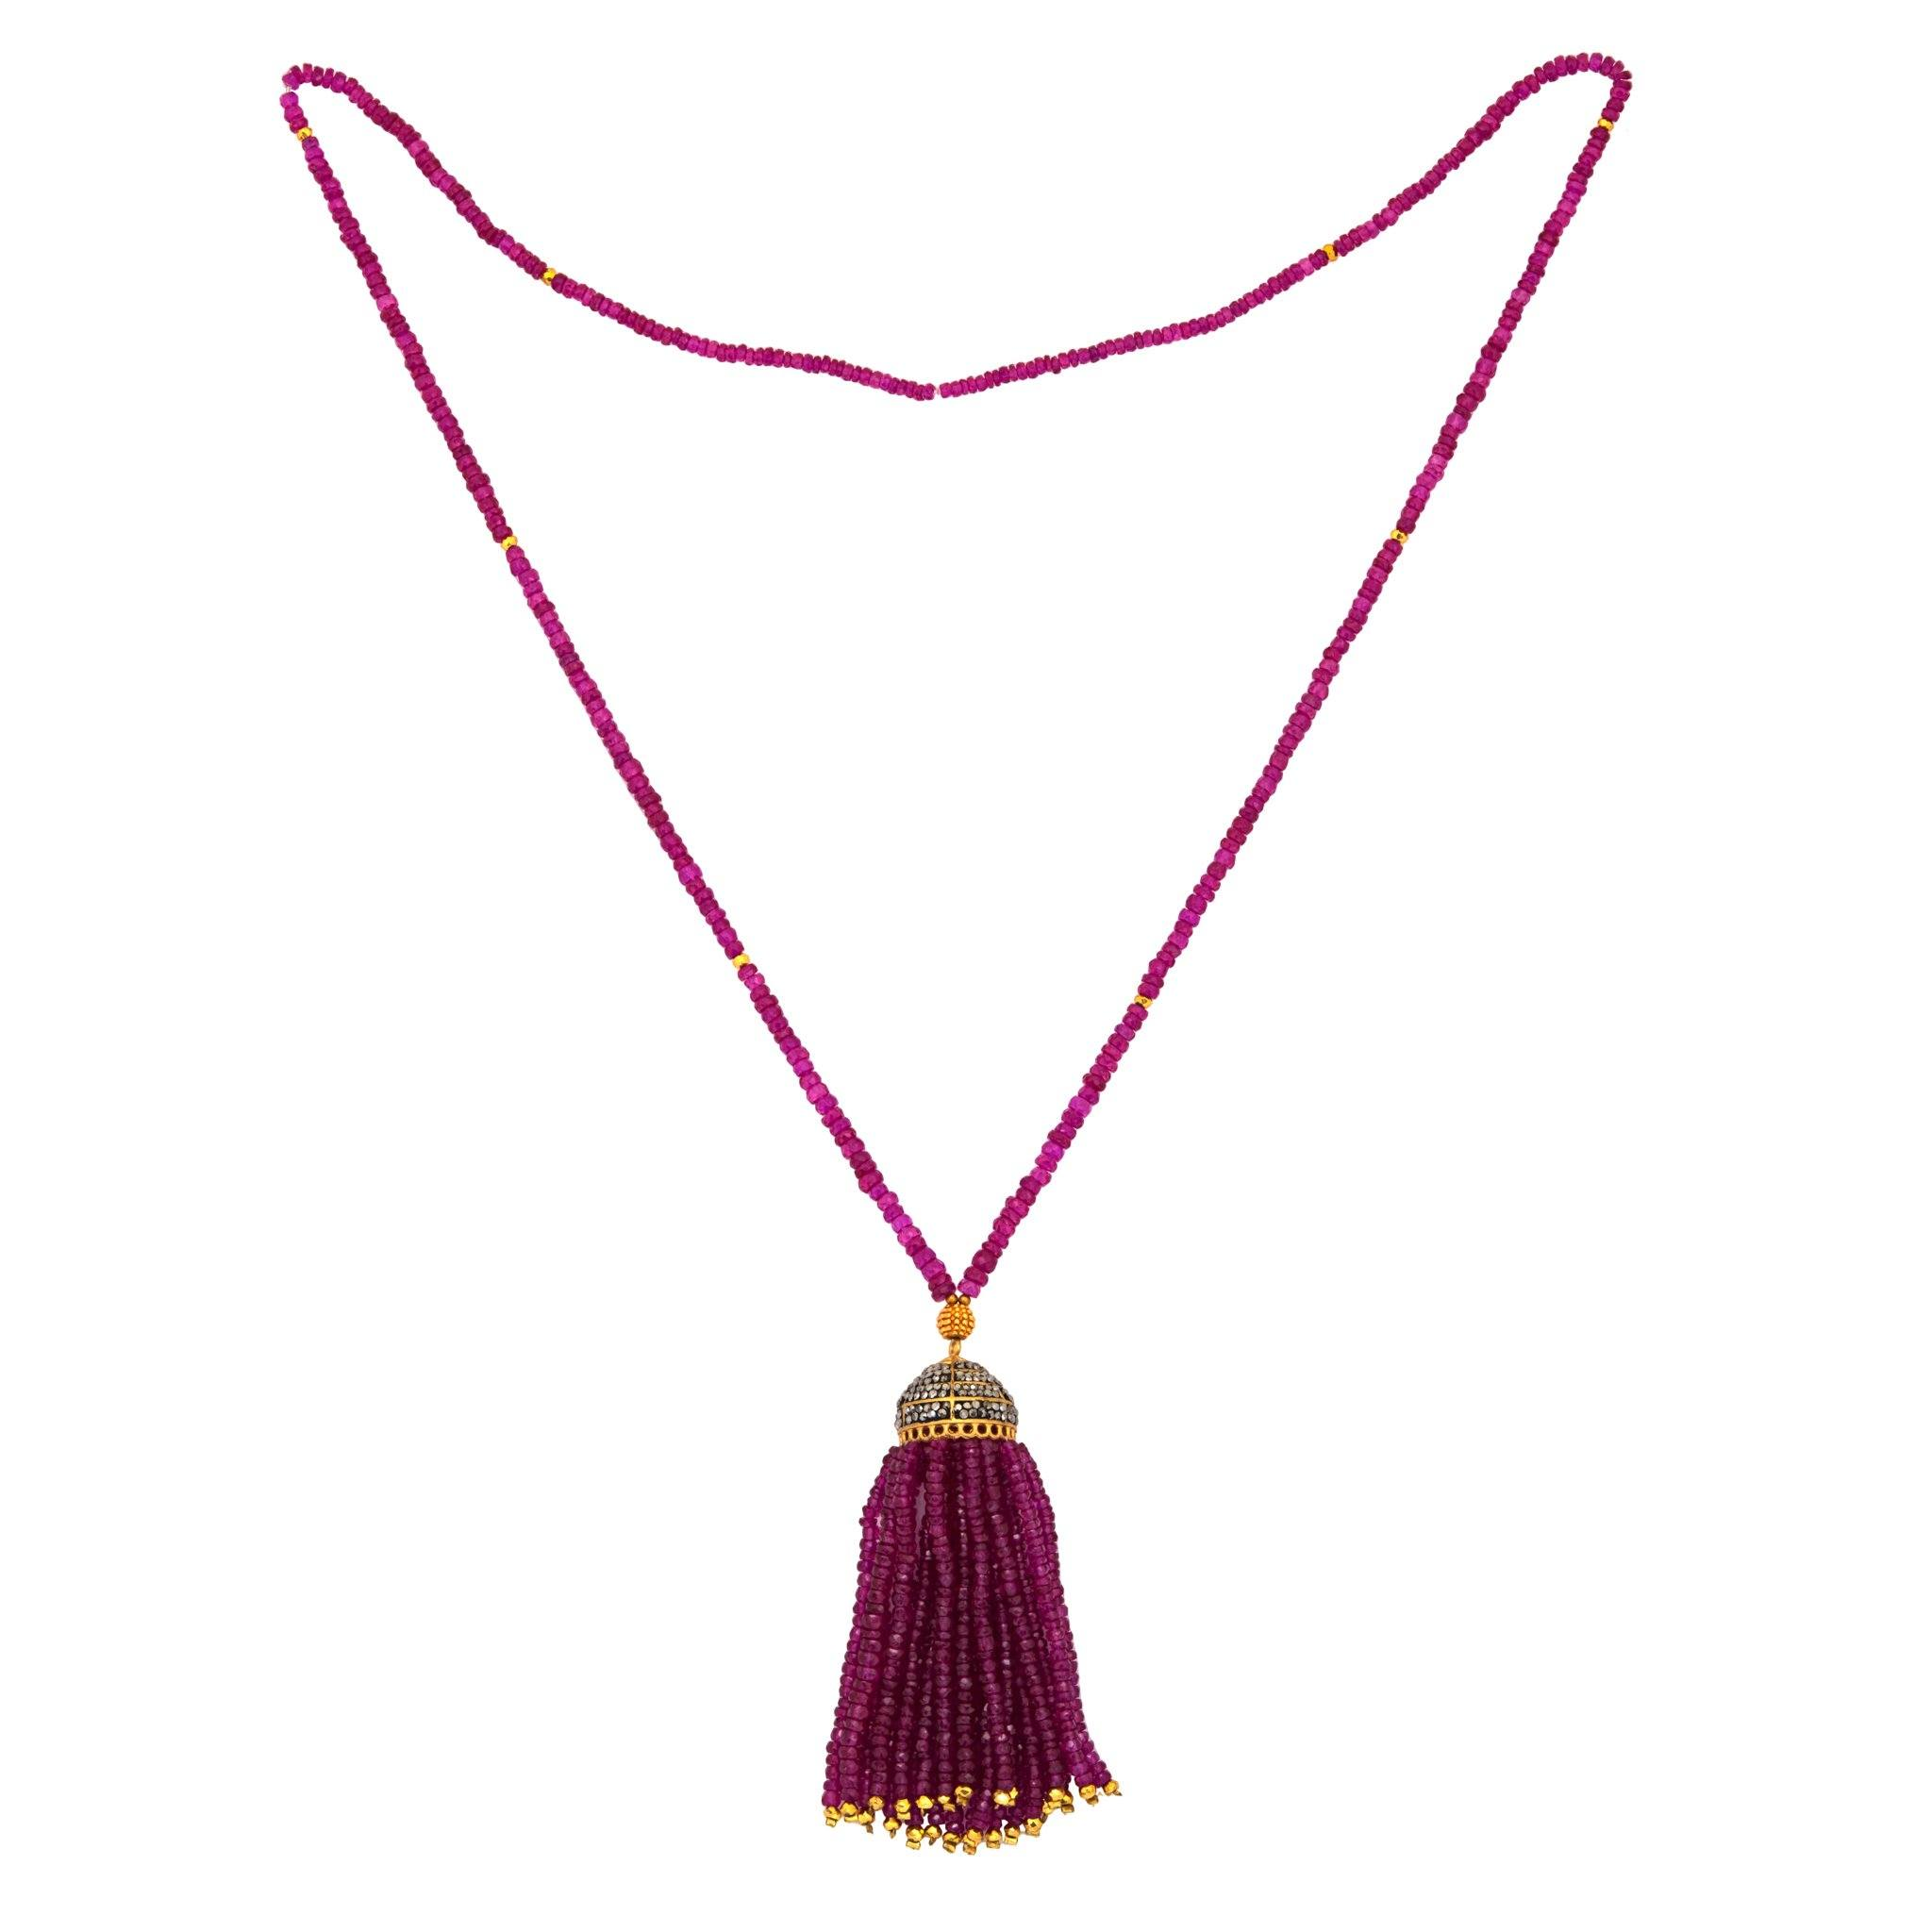 PALACIO Ruby tassel necklace - MadamSiam